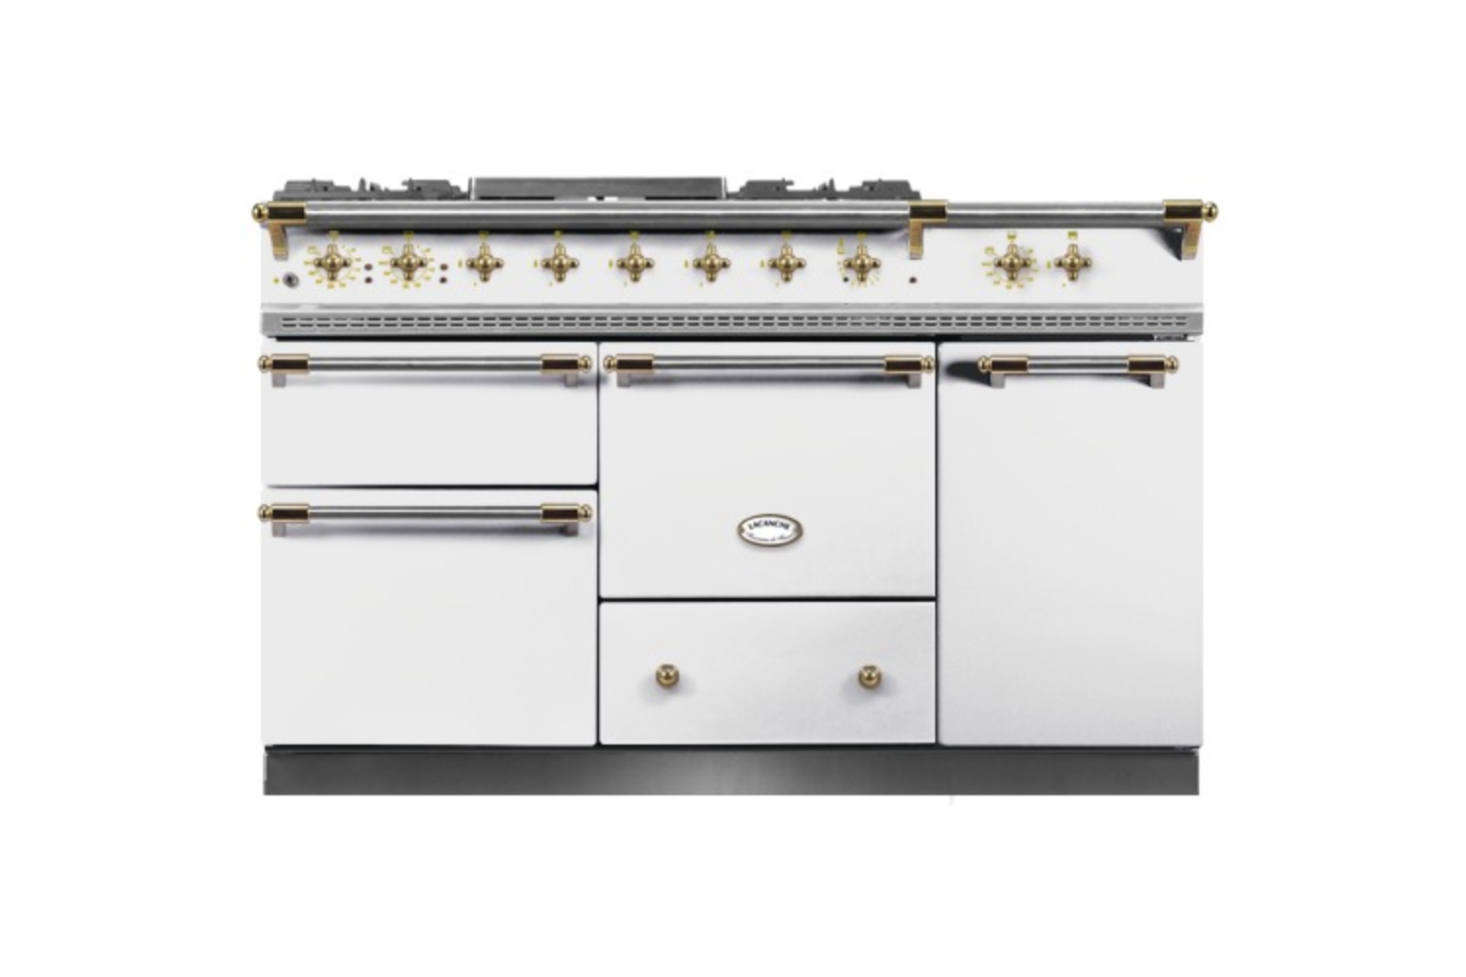 The range is a French Lacanche Chagny 00 Range in ivory and brass hardware. It can be ordered directly through Lacanche. For more on ranges like this, see  Easy Pieces: Retro Kitchen Ranges.